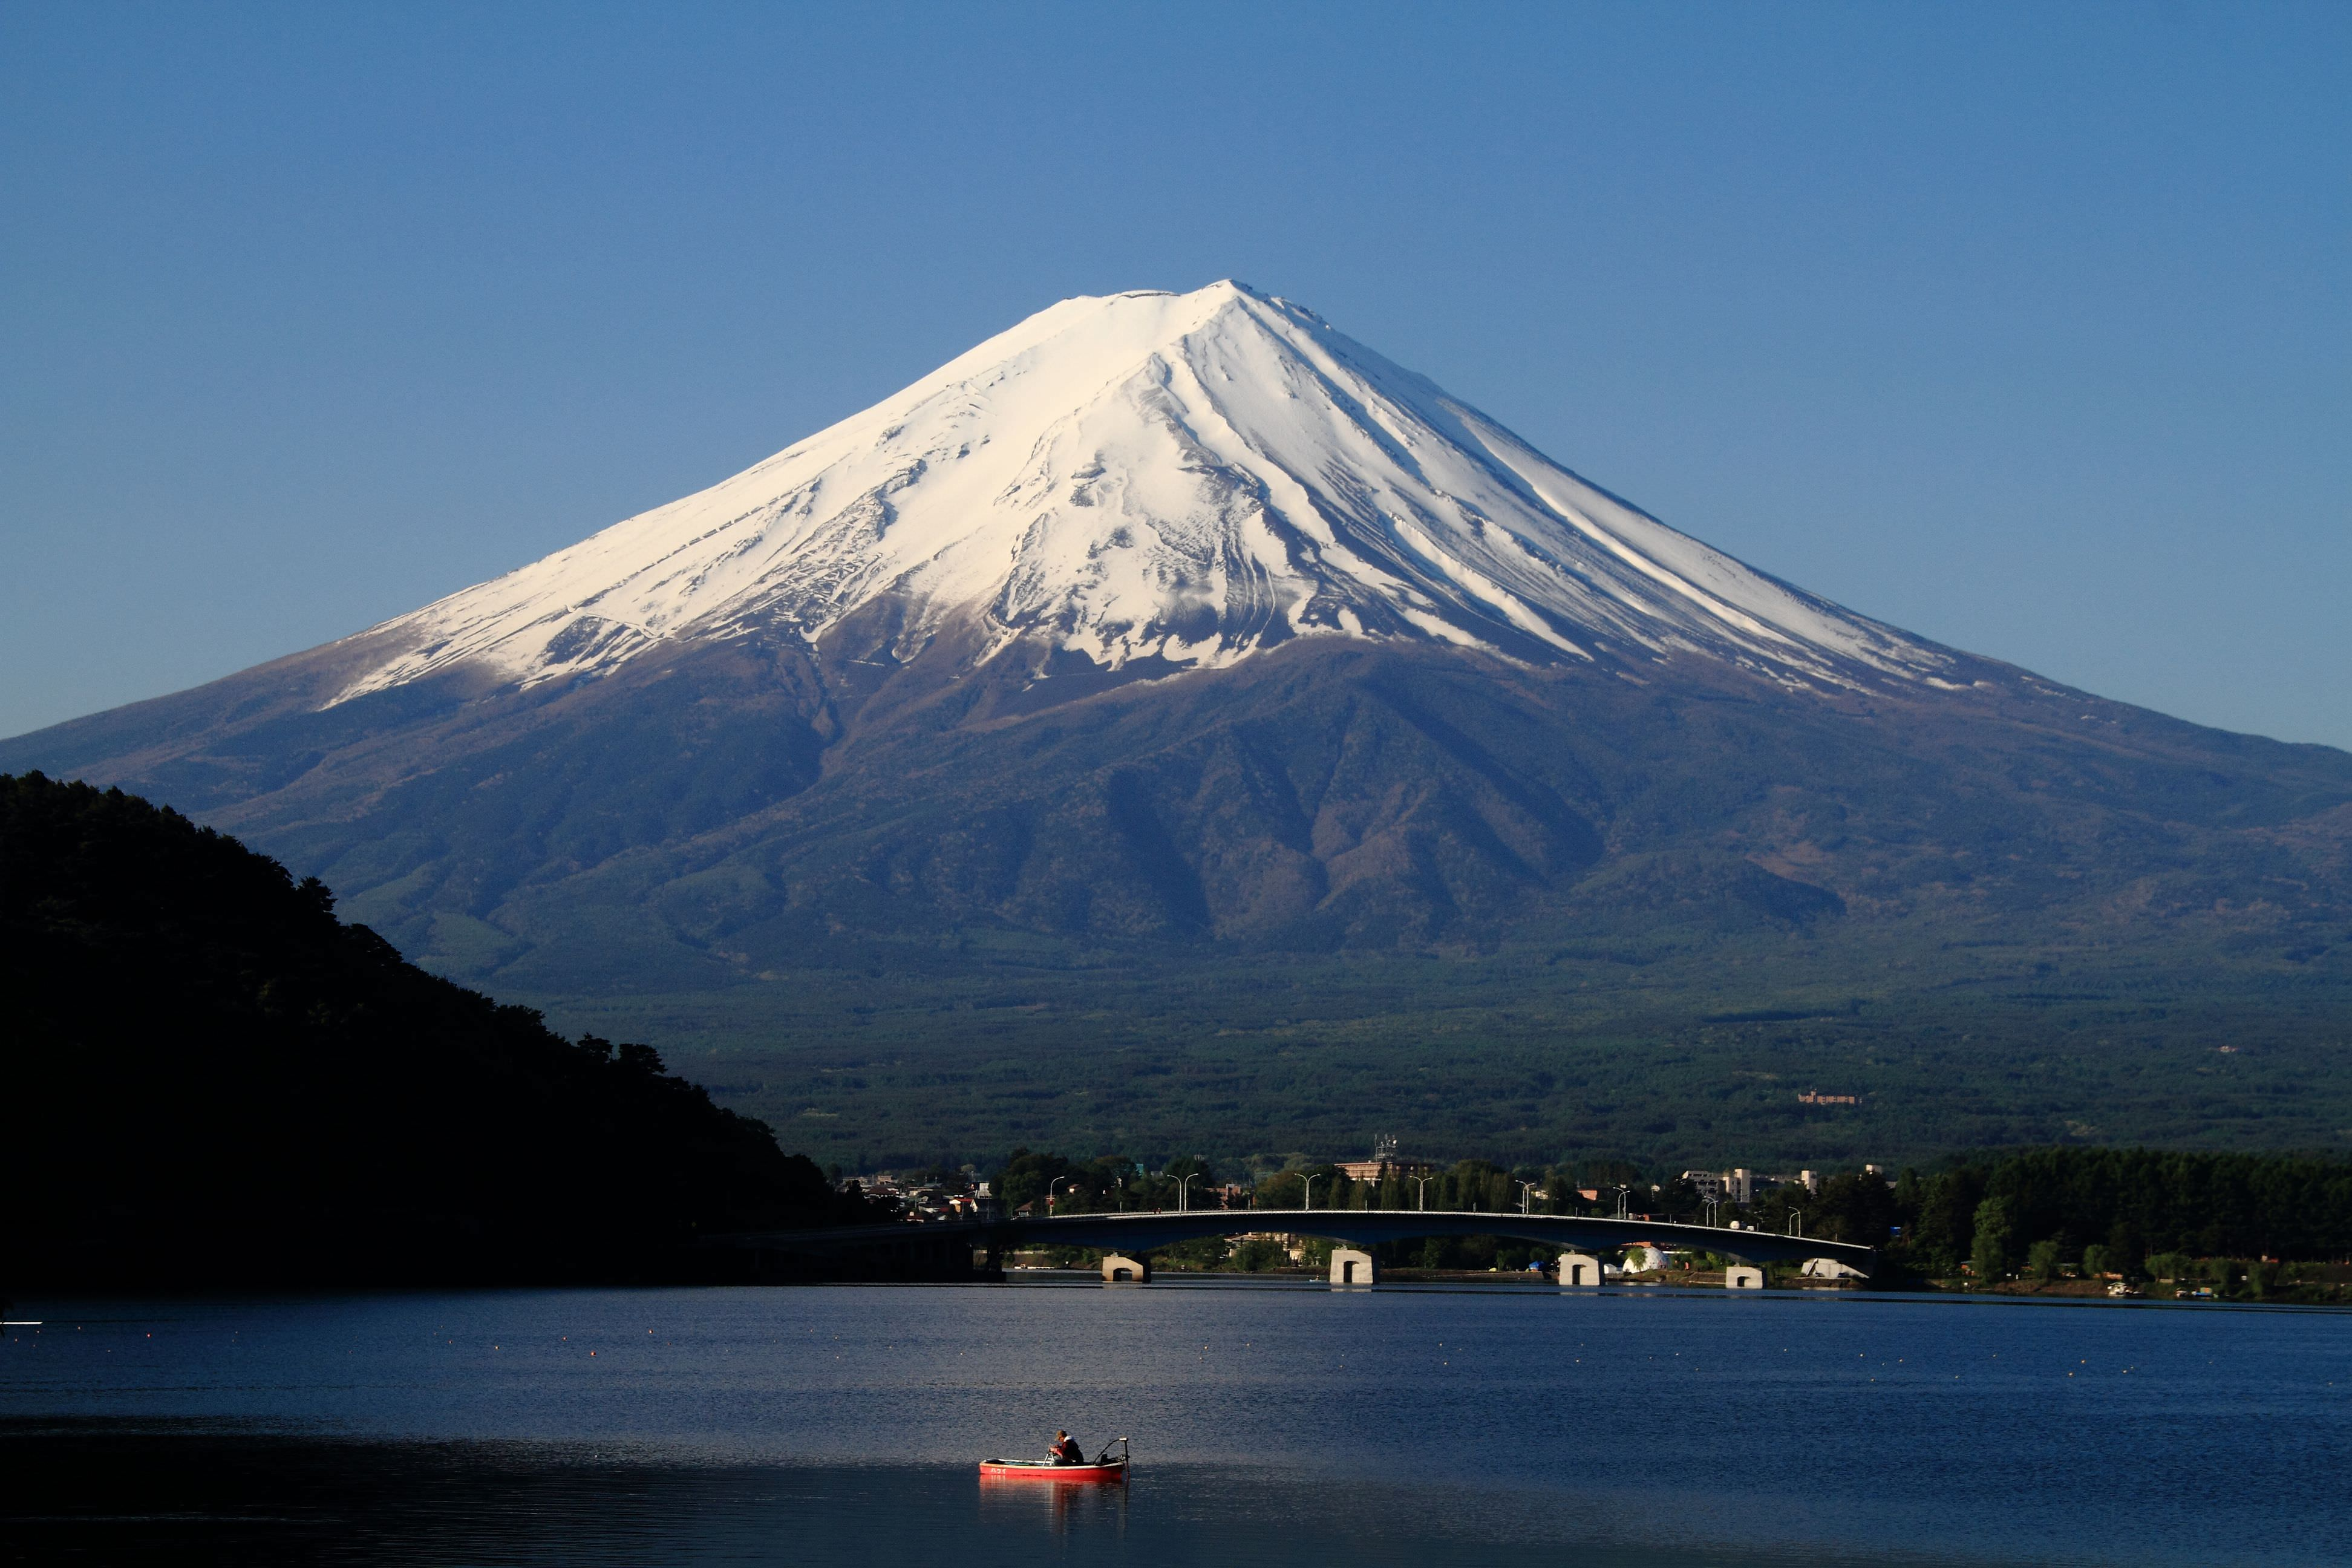 mount fuji Mount fuji facts - mount fuji, with an elevation of more than 12,388 feet, is the highest and the most famous mountain in japan.